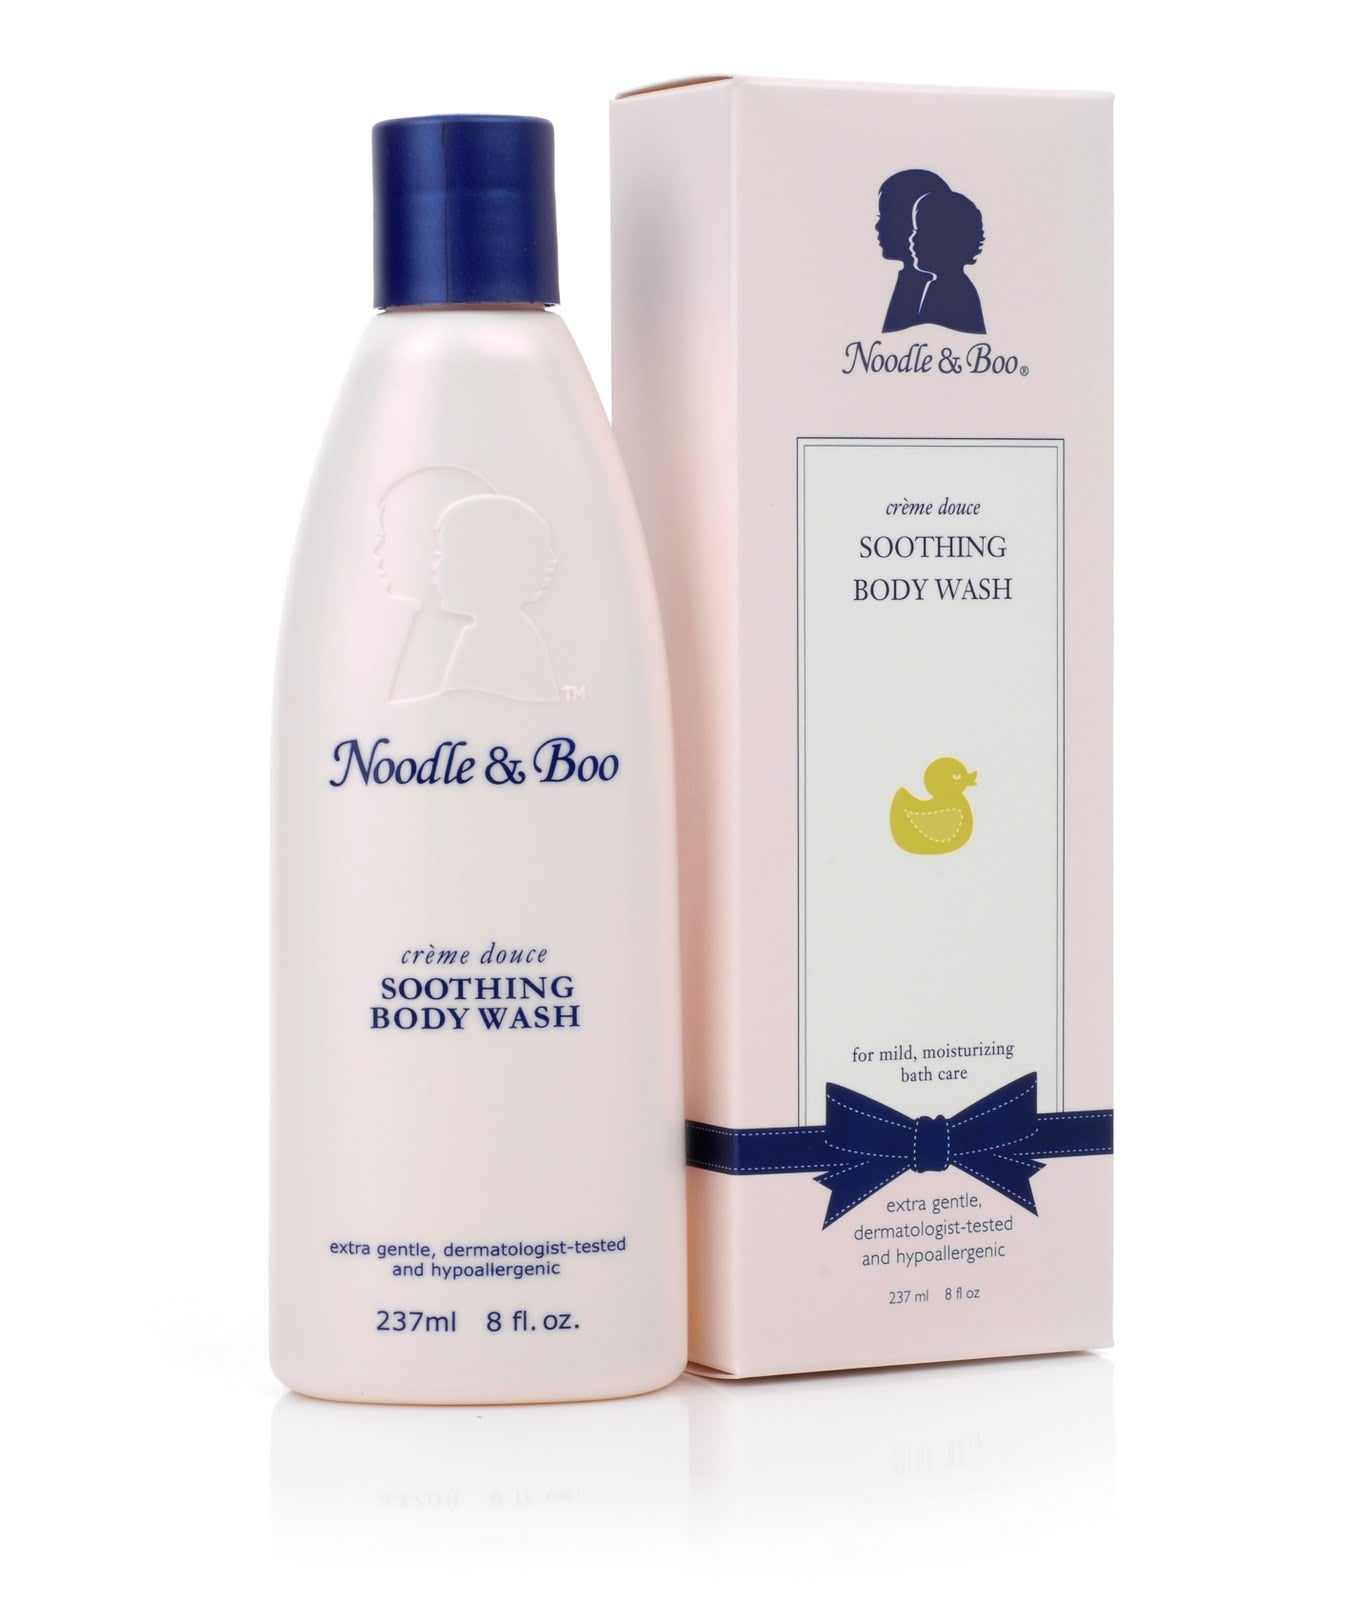 Noodle & Boo Newborn Two-in-One Hair and Body Wash